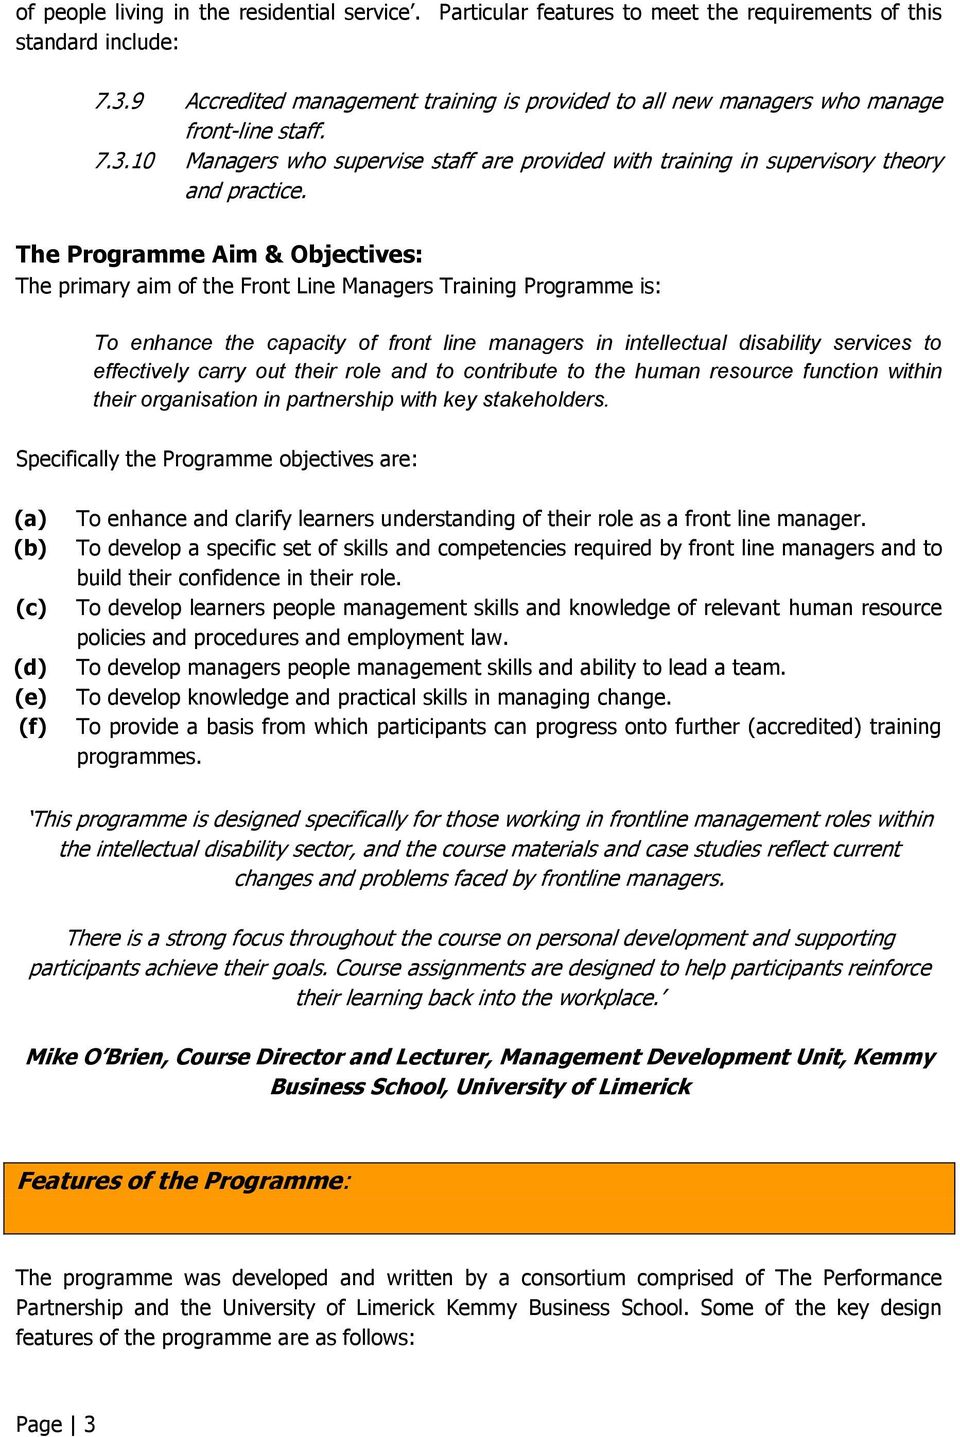 The Programme Aim & Objectives: The primary aim of the Front Line Managers Training Programme is: To enhance the capacity of front line managers in intellectual disability services to effectively